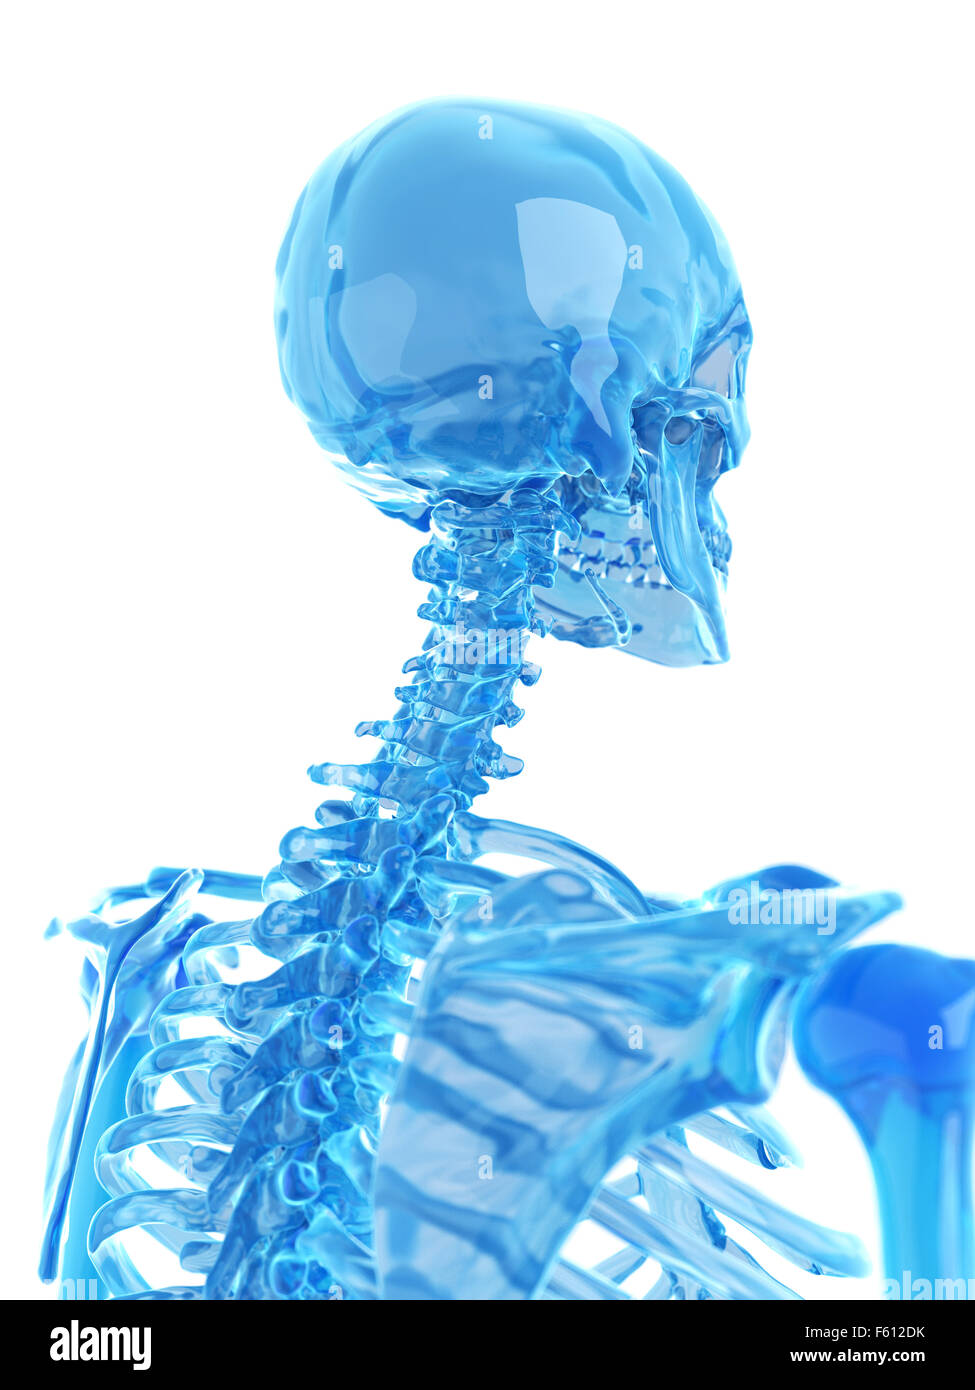 medically accurate illustration of spine - Stock Image